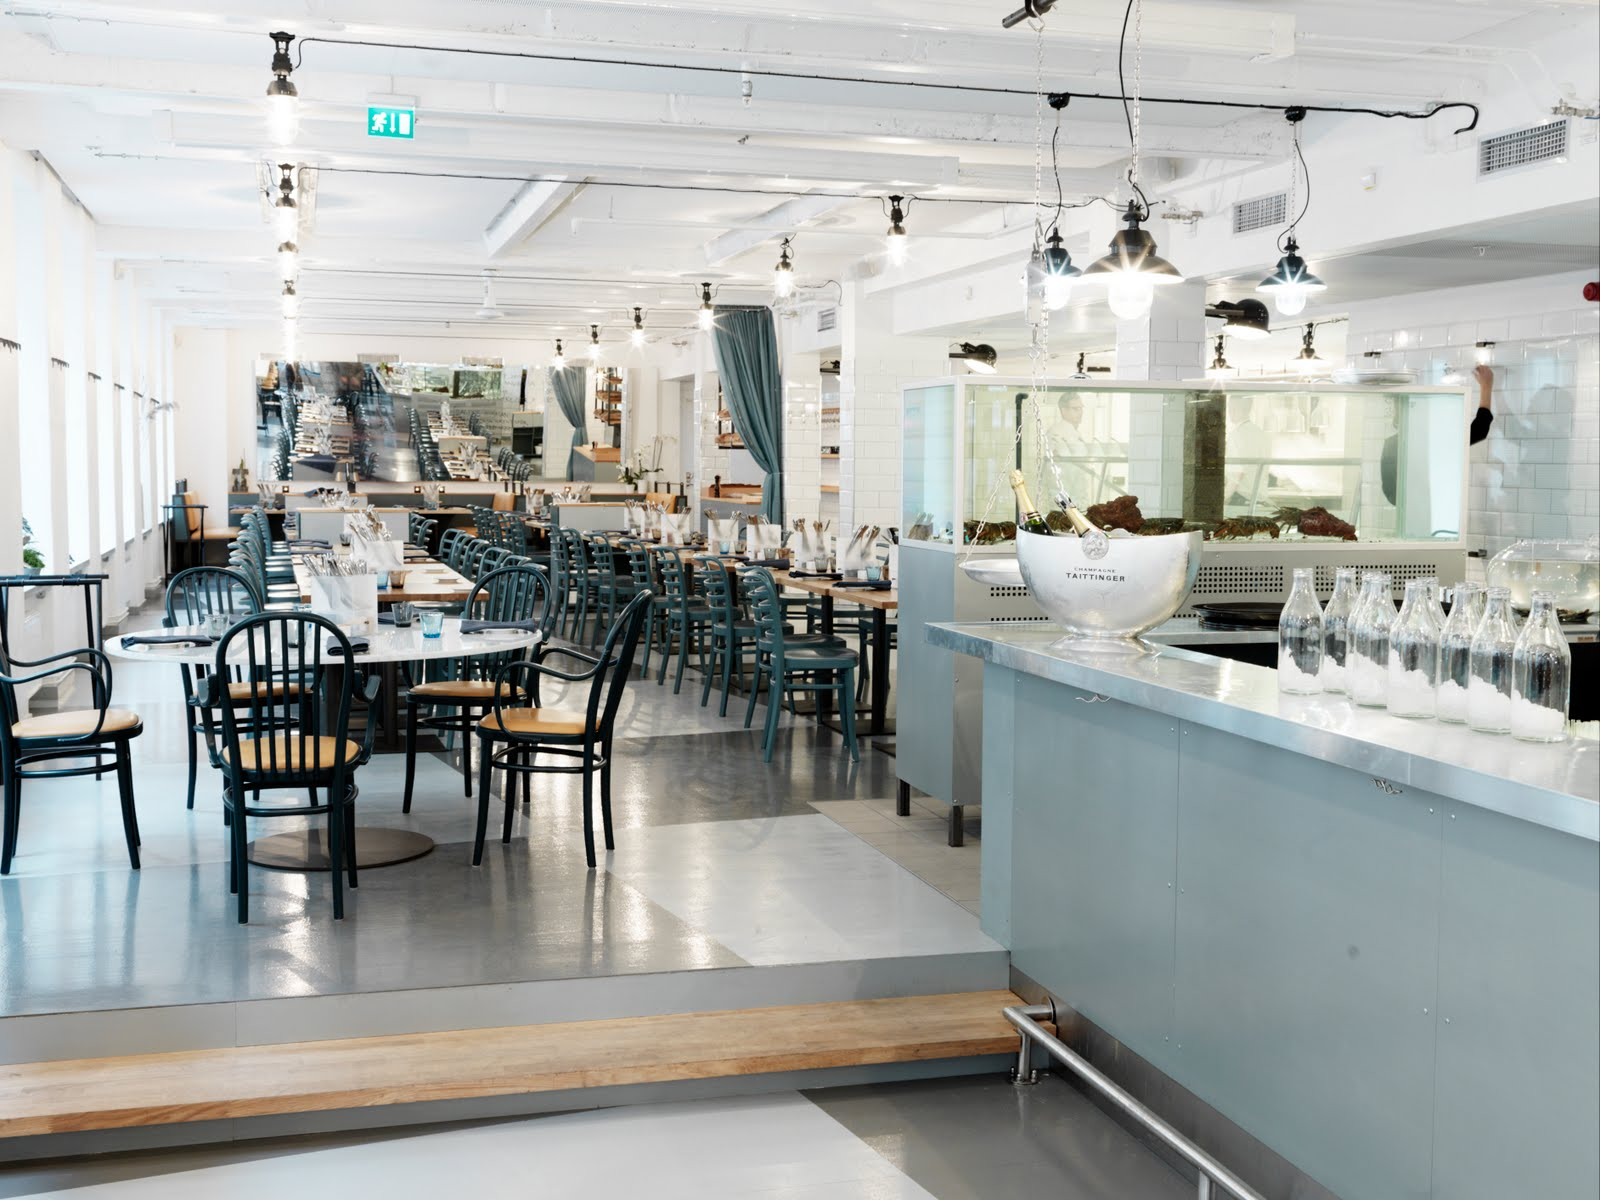 Chads drygoods: b.a.r. restaurang, stockholm